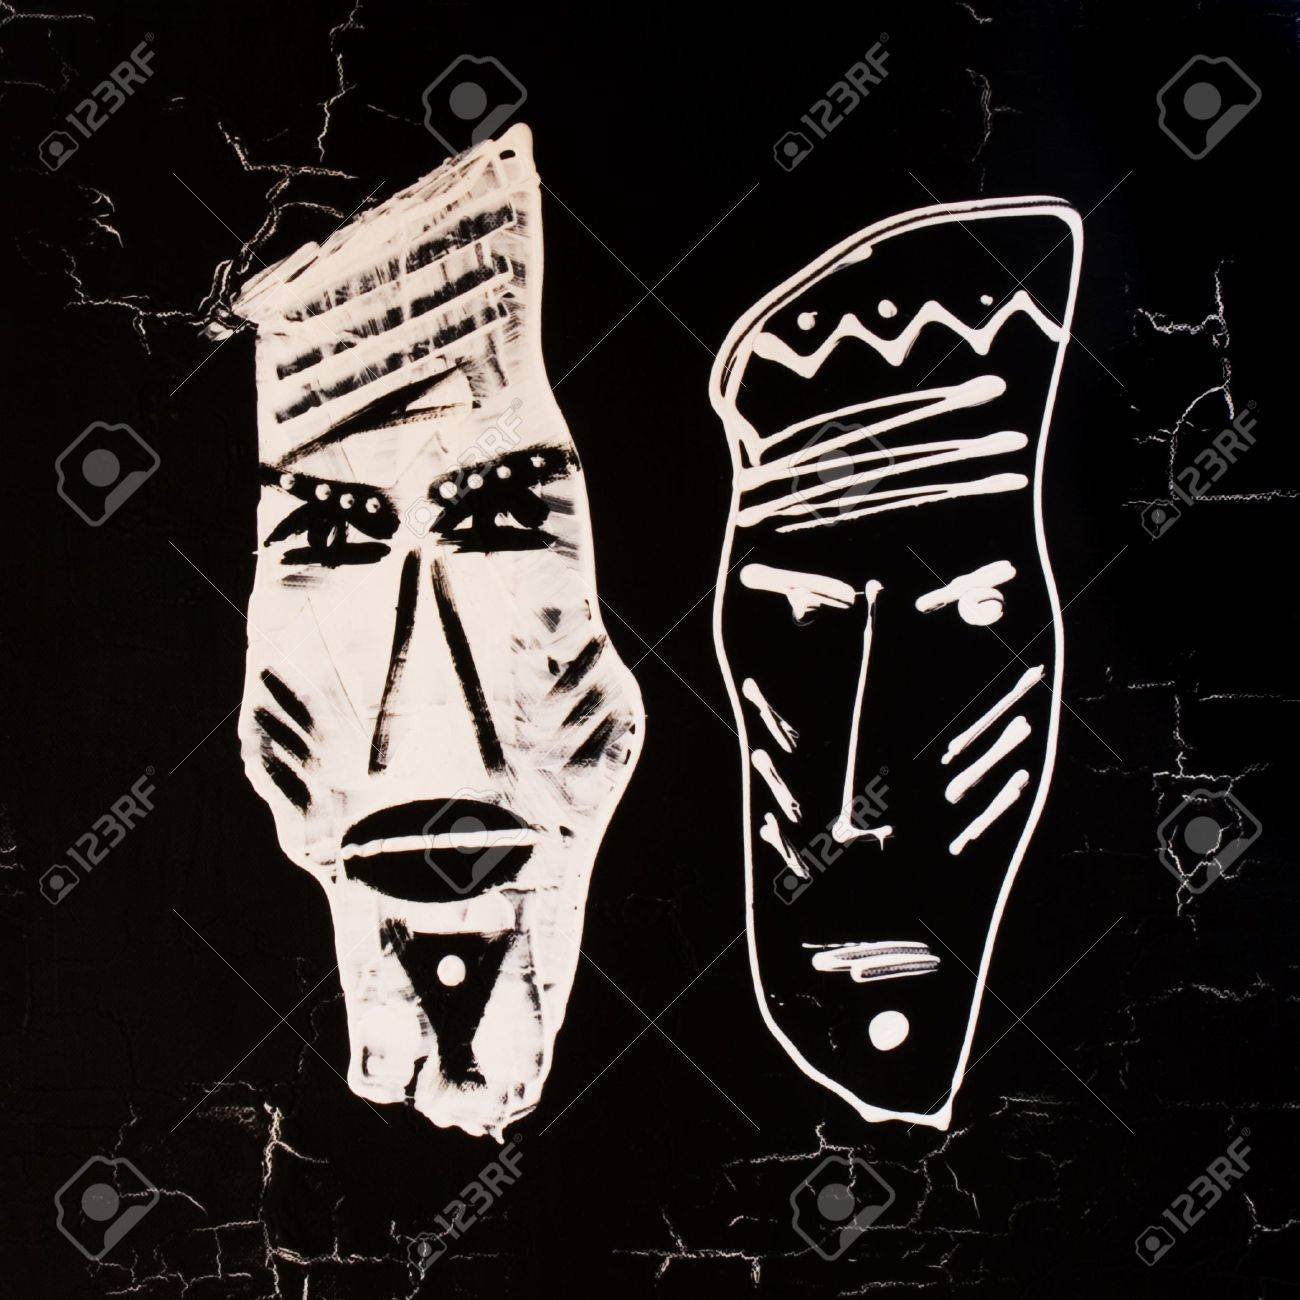 Handpainted african design black and white artwork is created and painted by myself stock photo